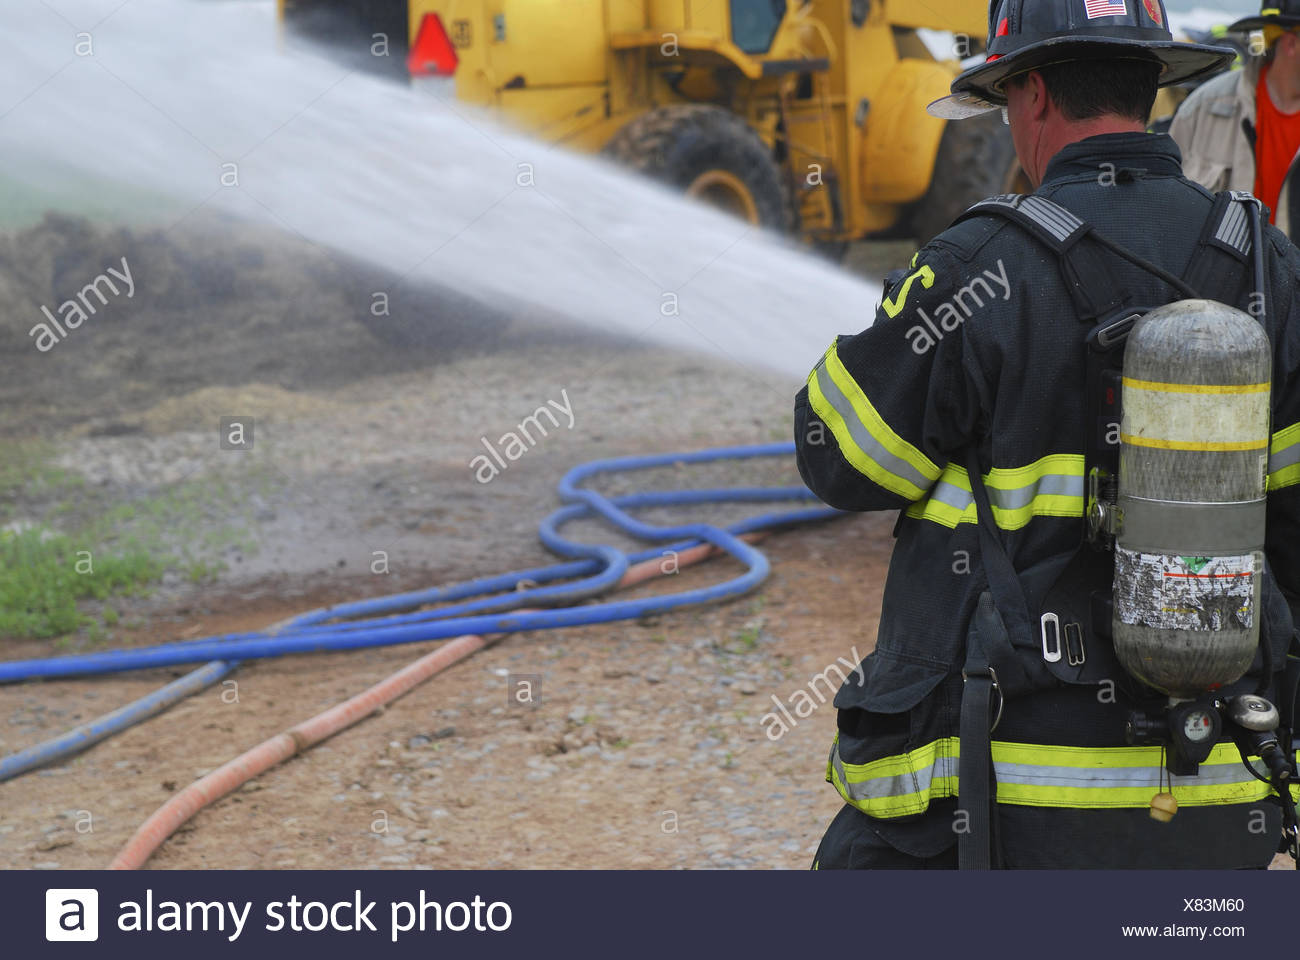 Fire Fighter Stock Photos Amp Fire Fighter Stock Images Alamy